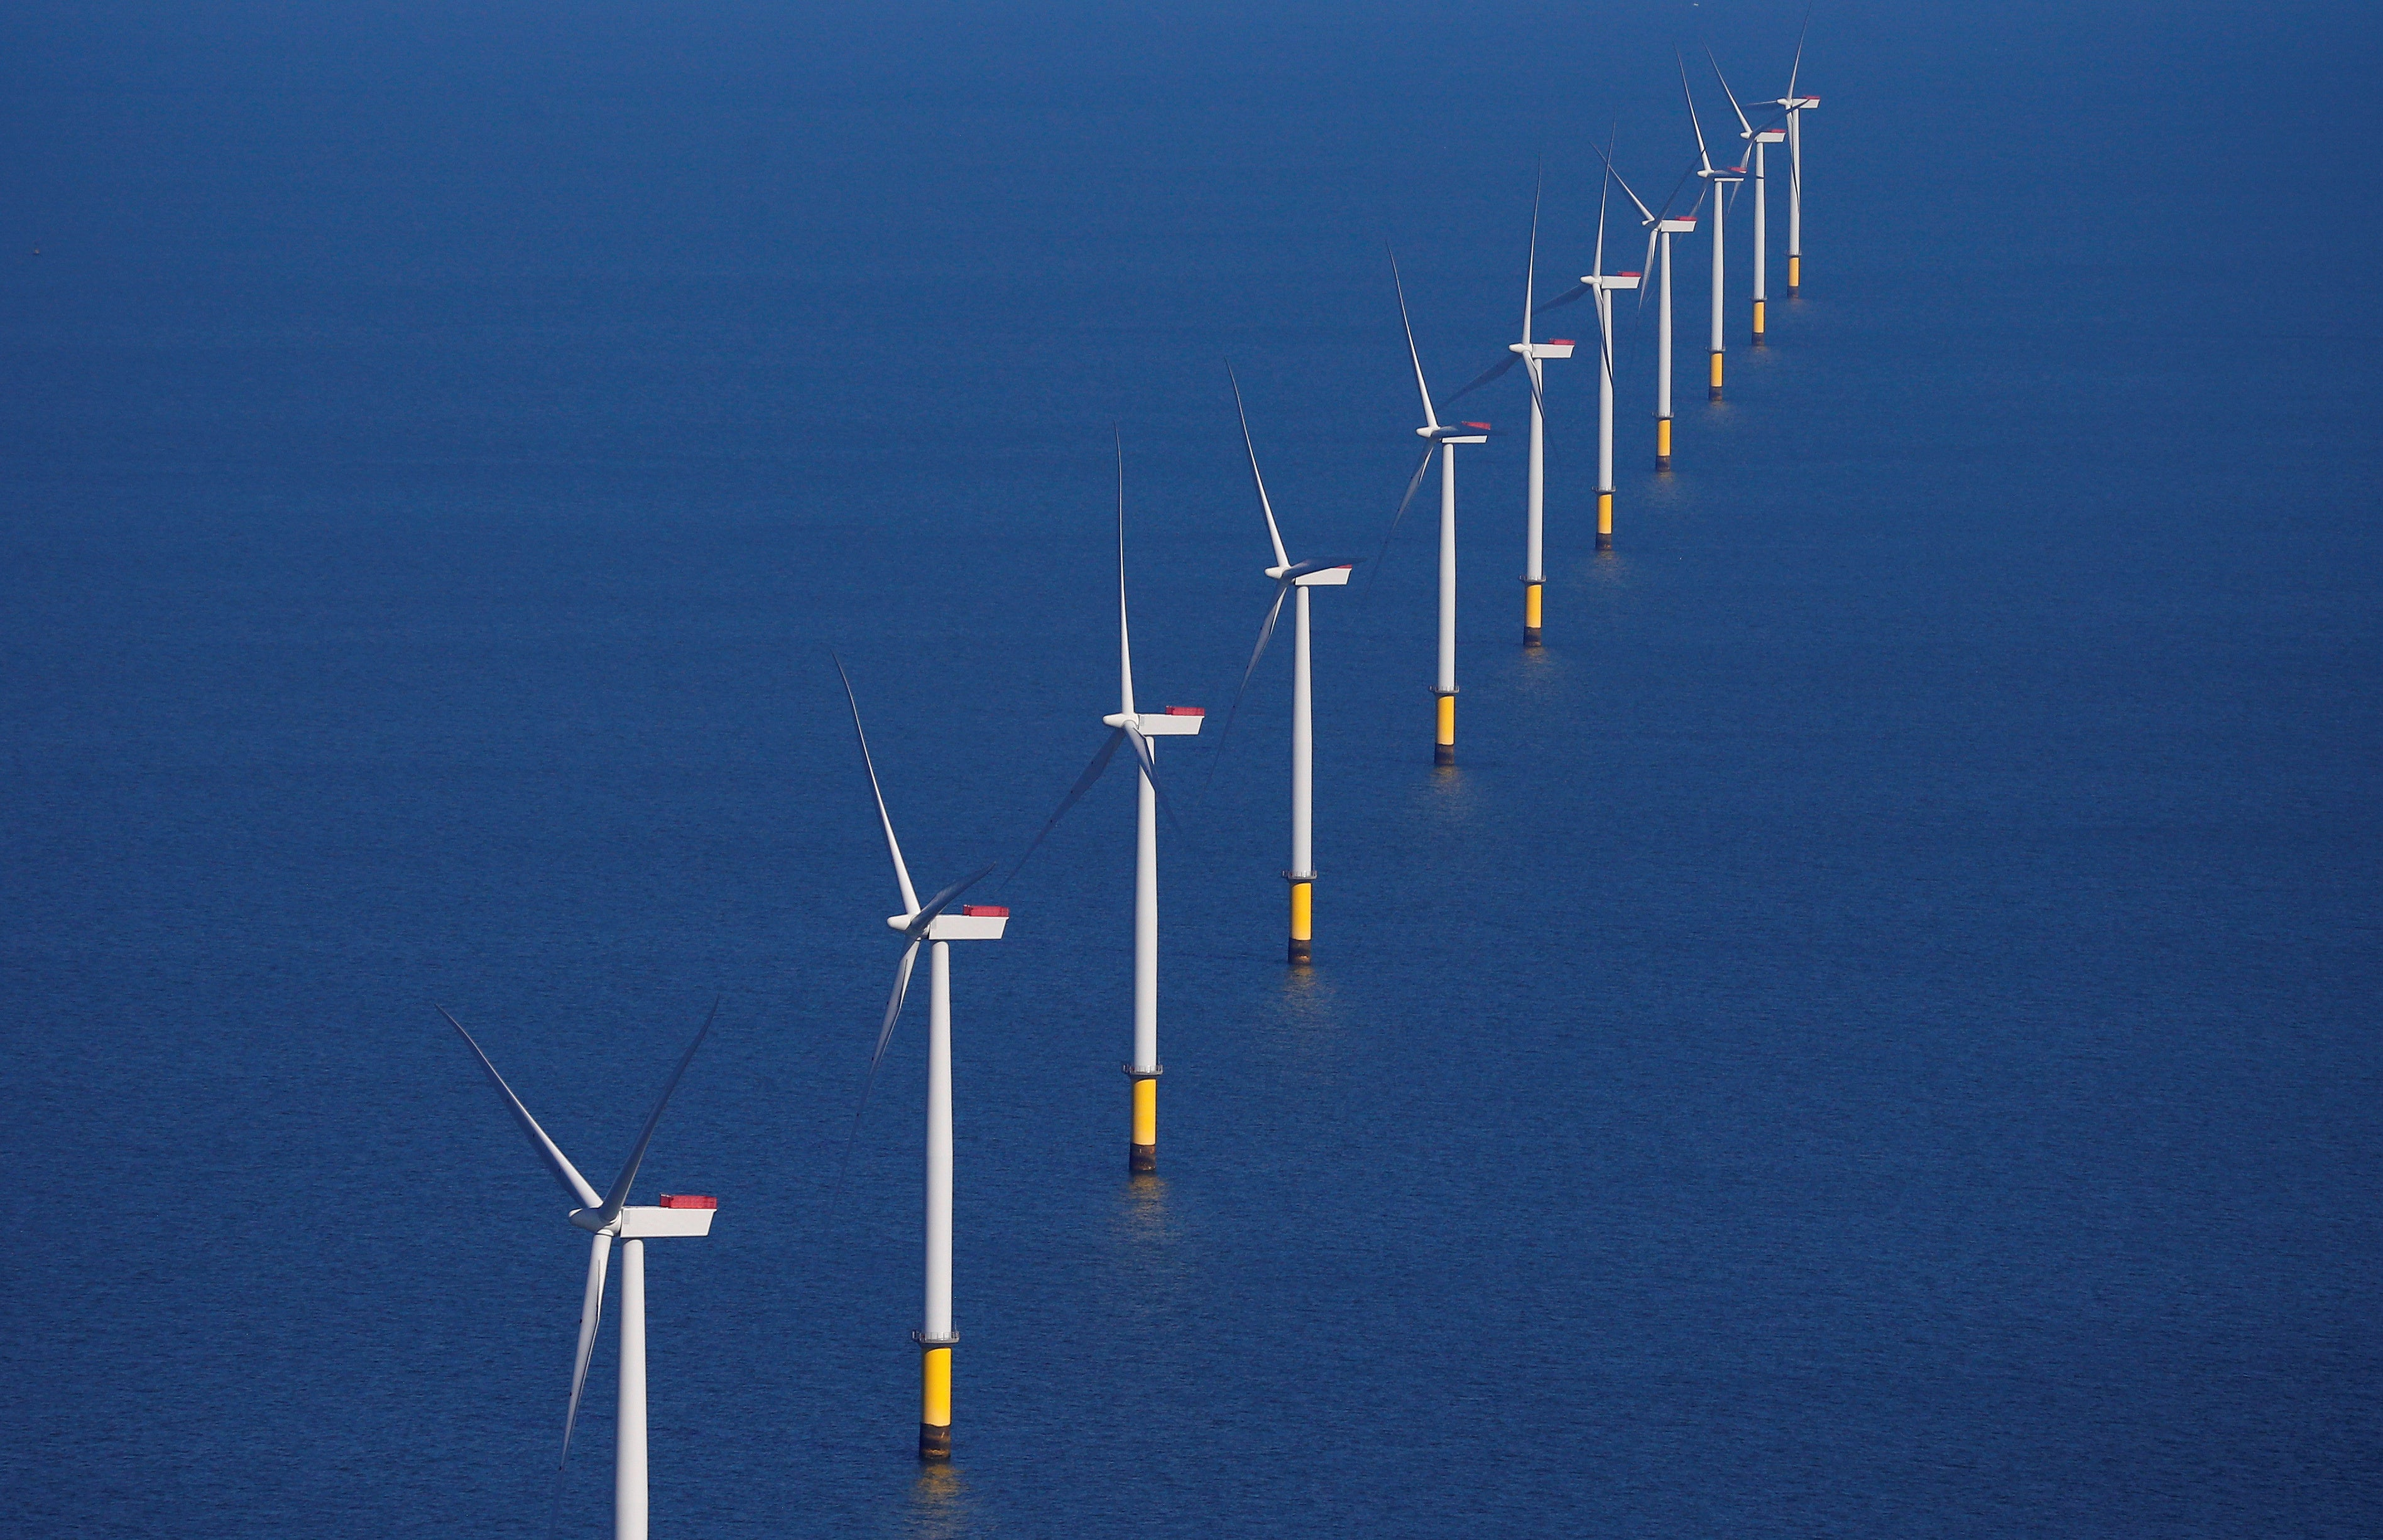 Renewable power overtakes fossil fuels for first time in UK in 2020